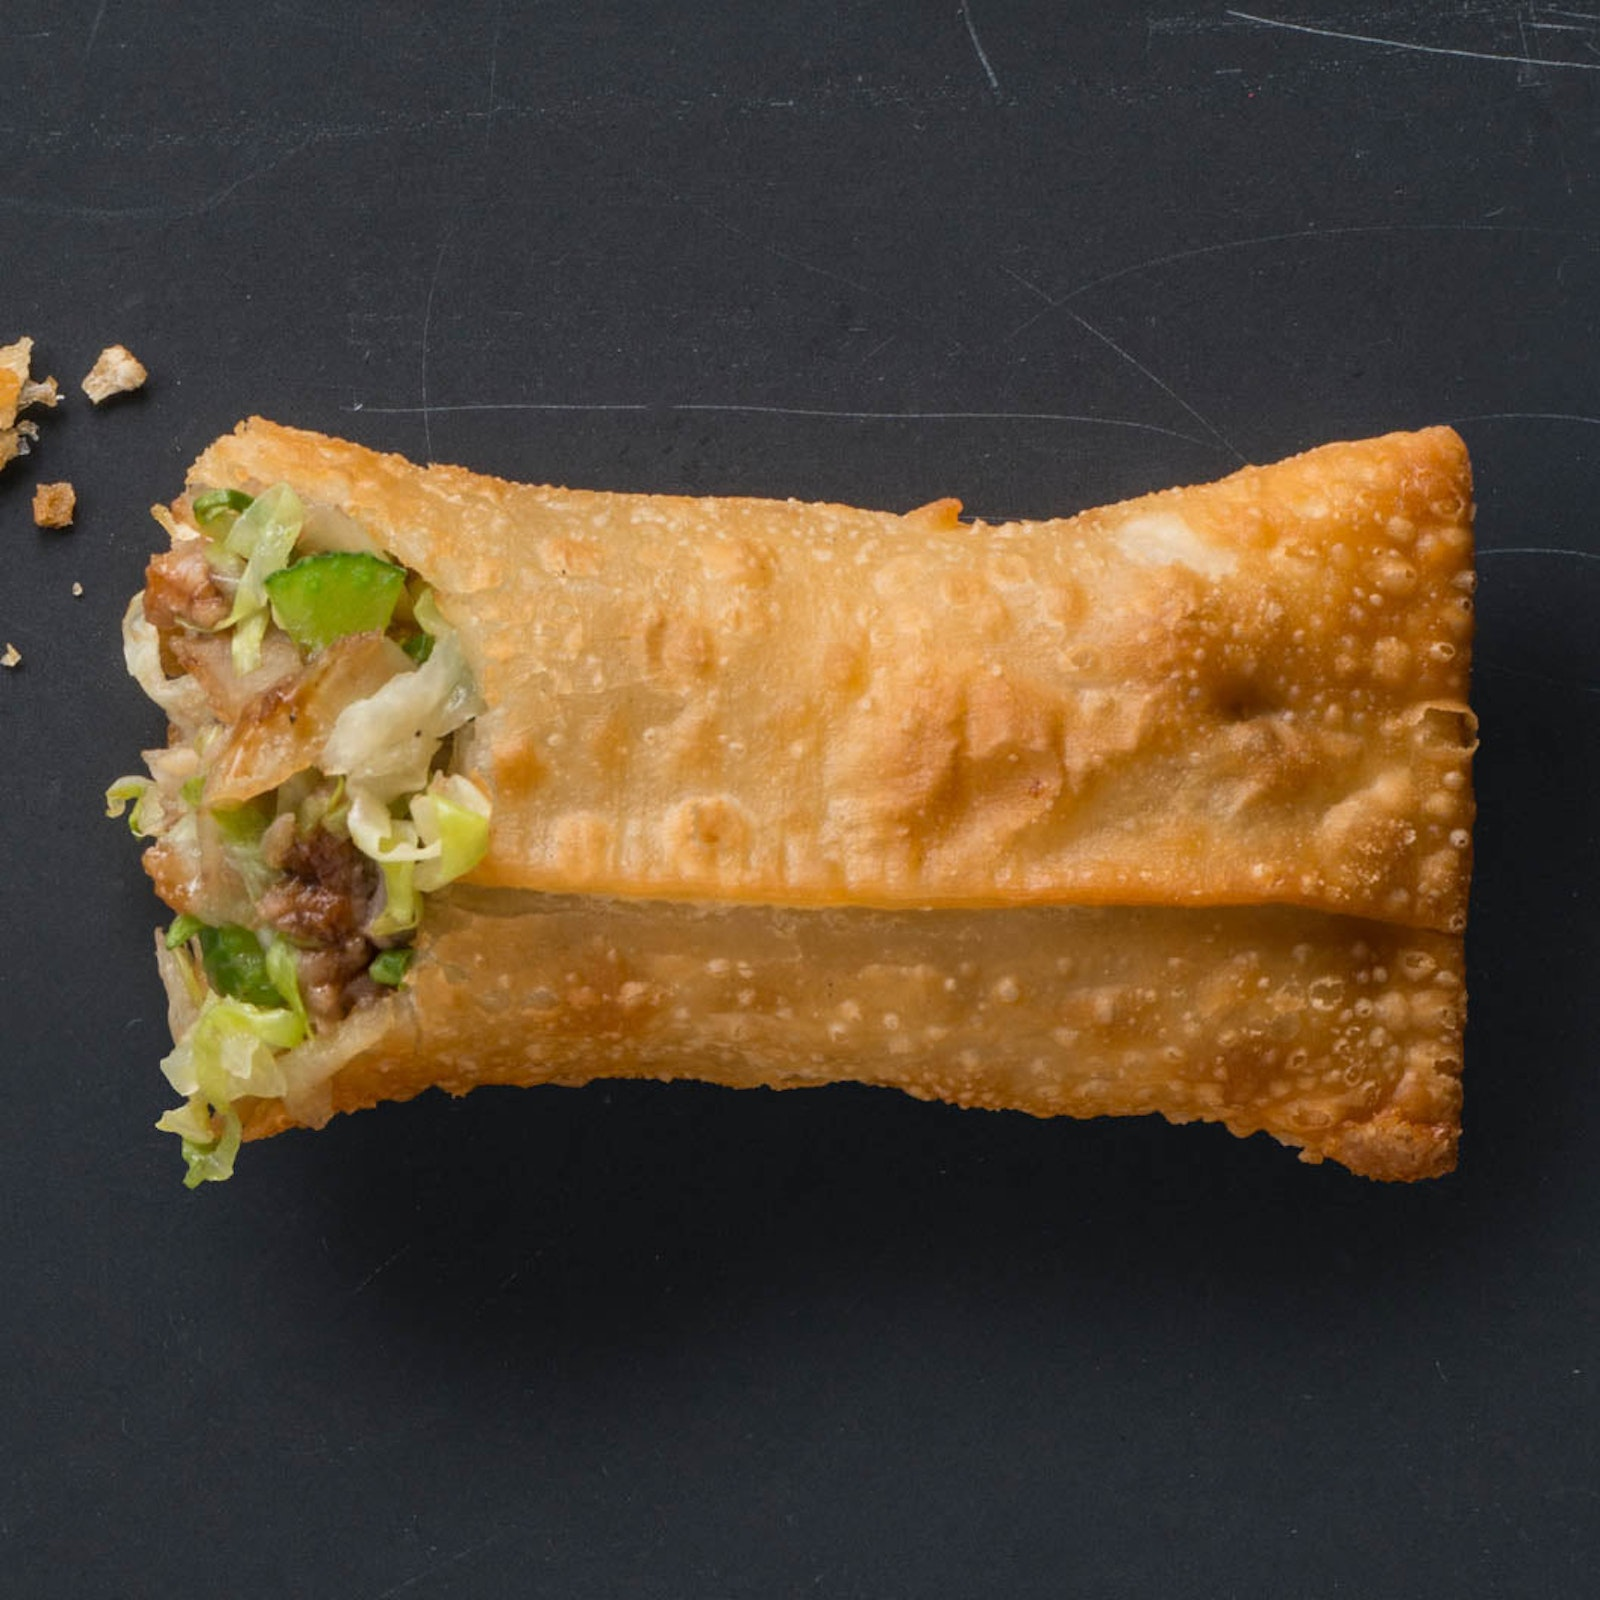 McCain Pork & Beef Egg Roll